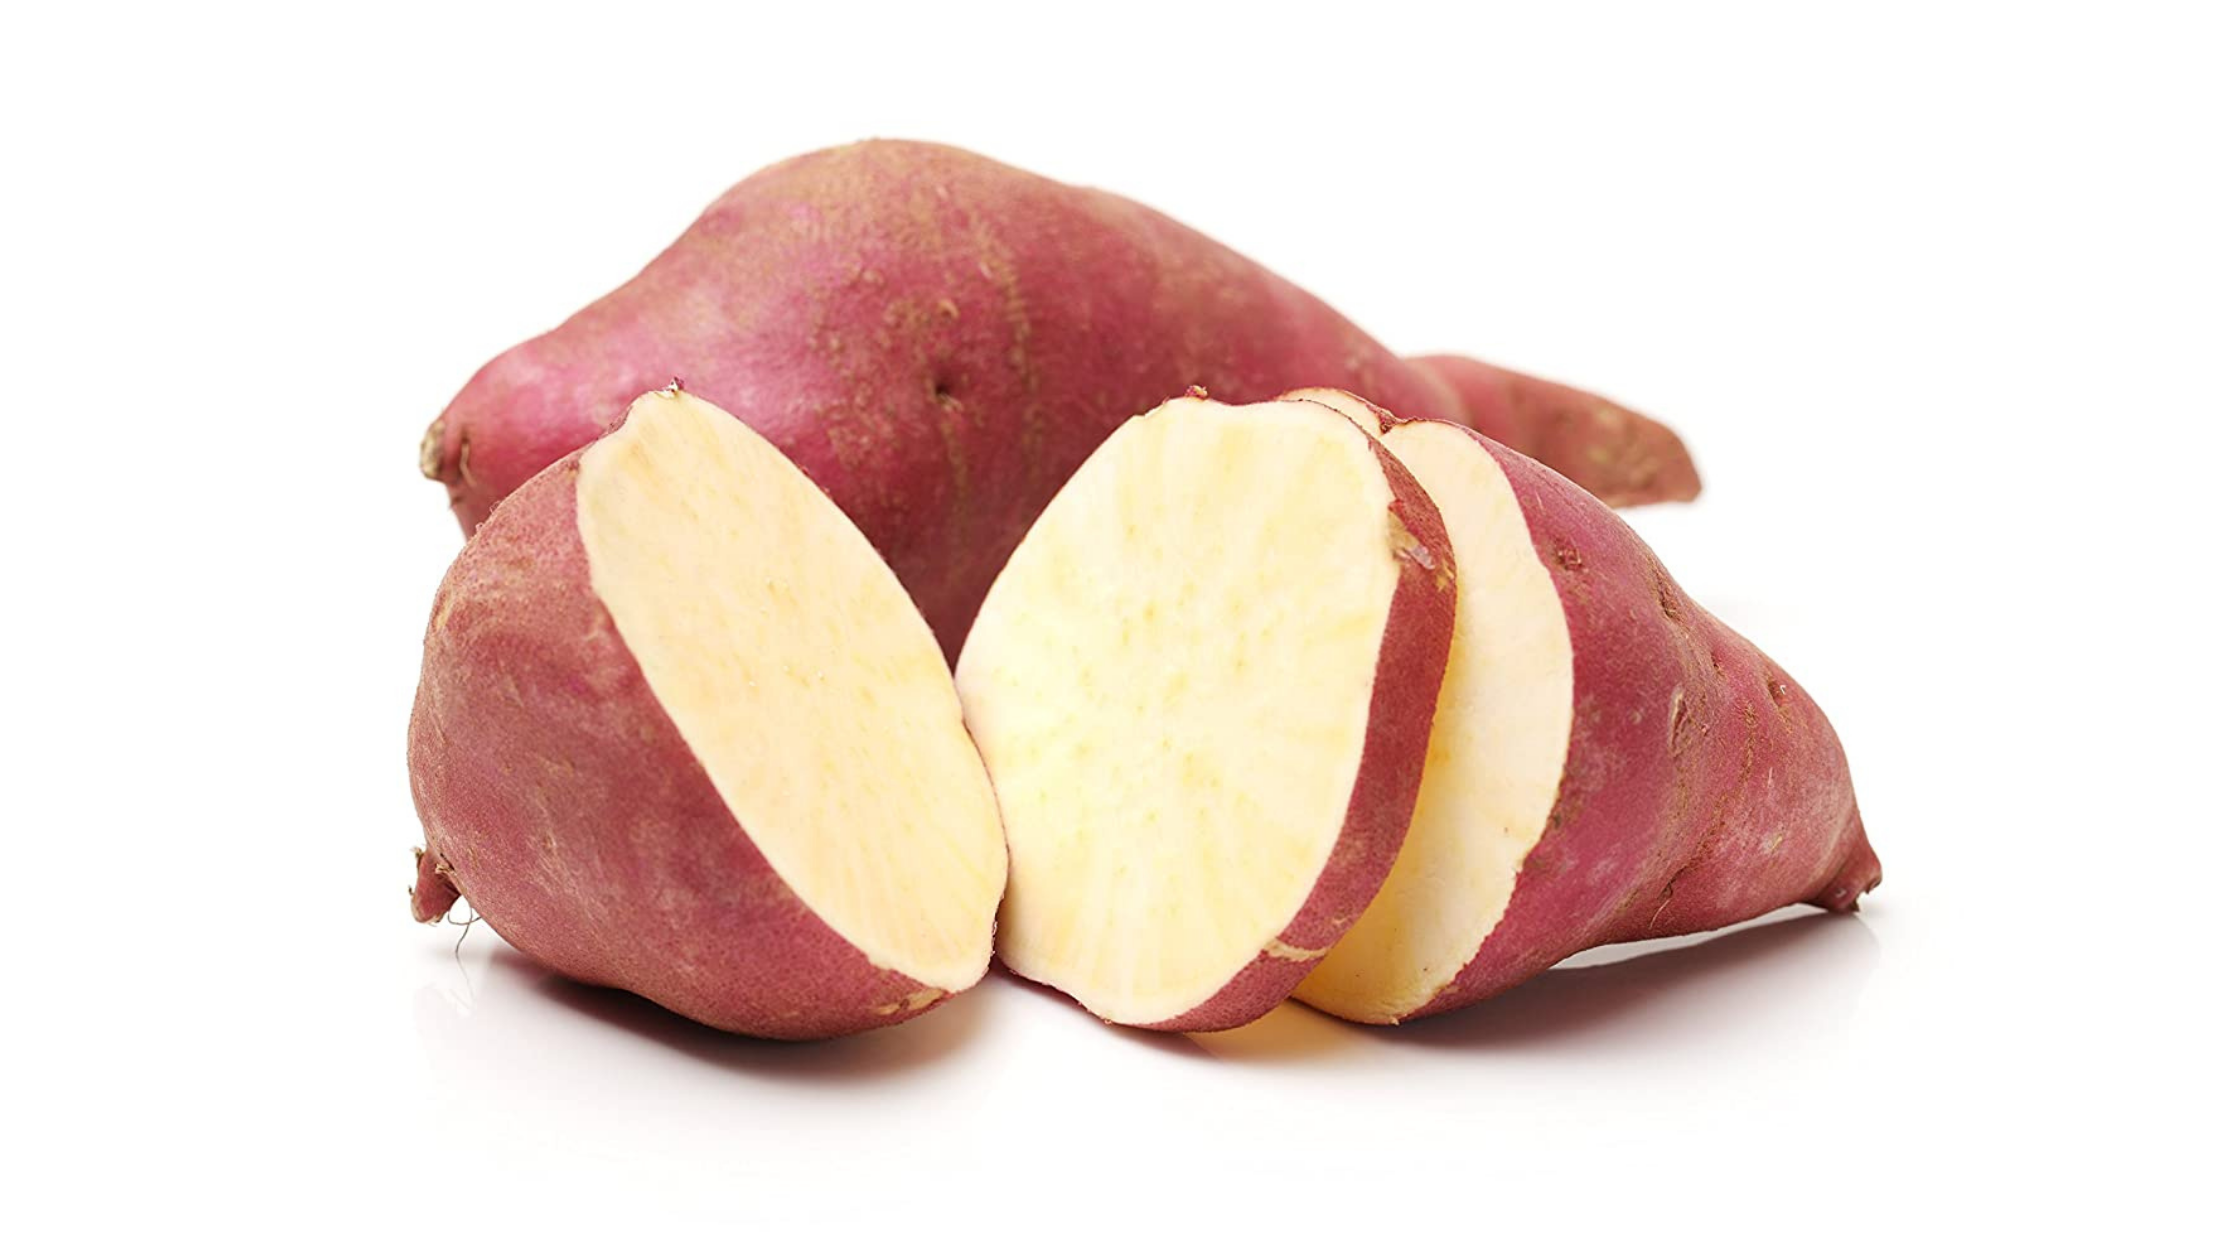 Can You Include Sweet Potatoes In The Keto Diet?